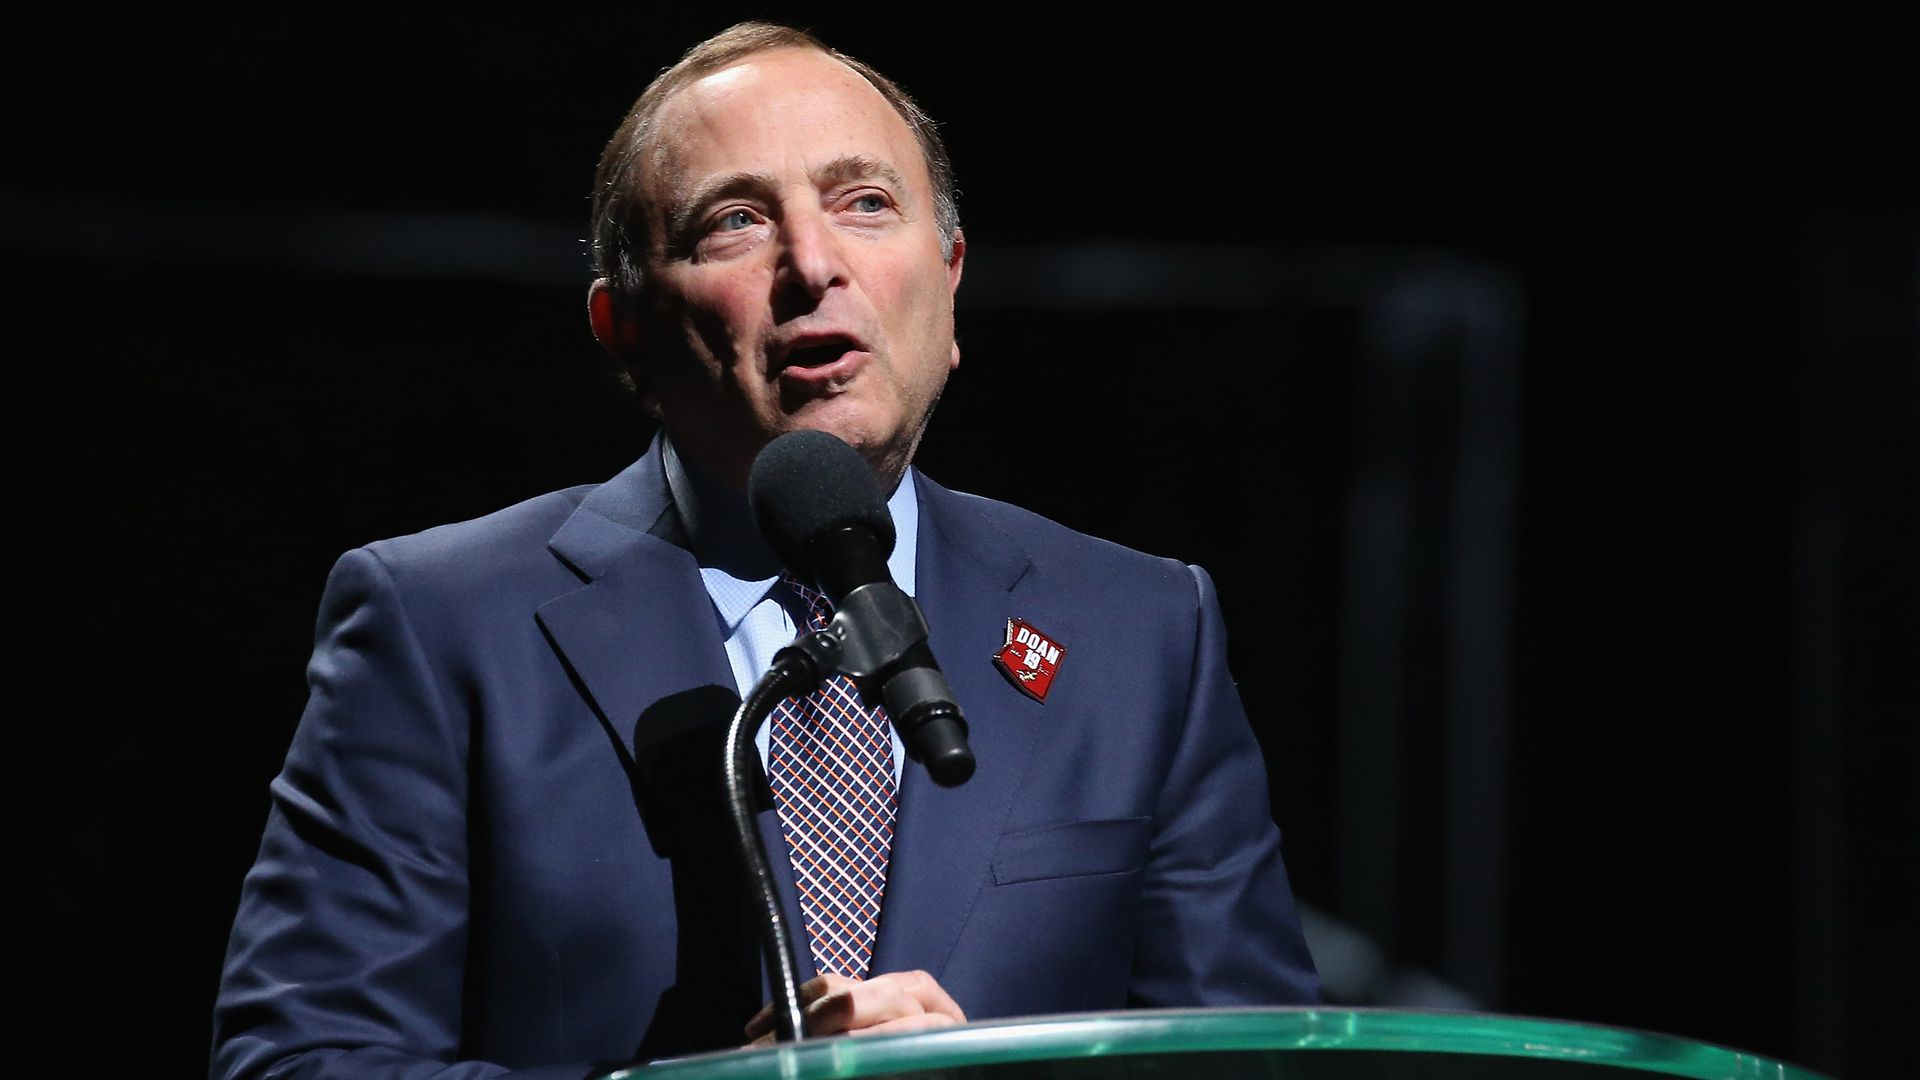 NHL commissioner Gary Bettman stands and speaks in a suit in front of a podium.